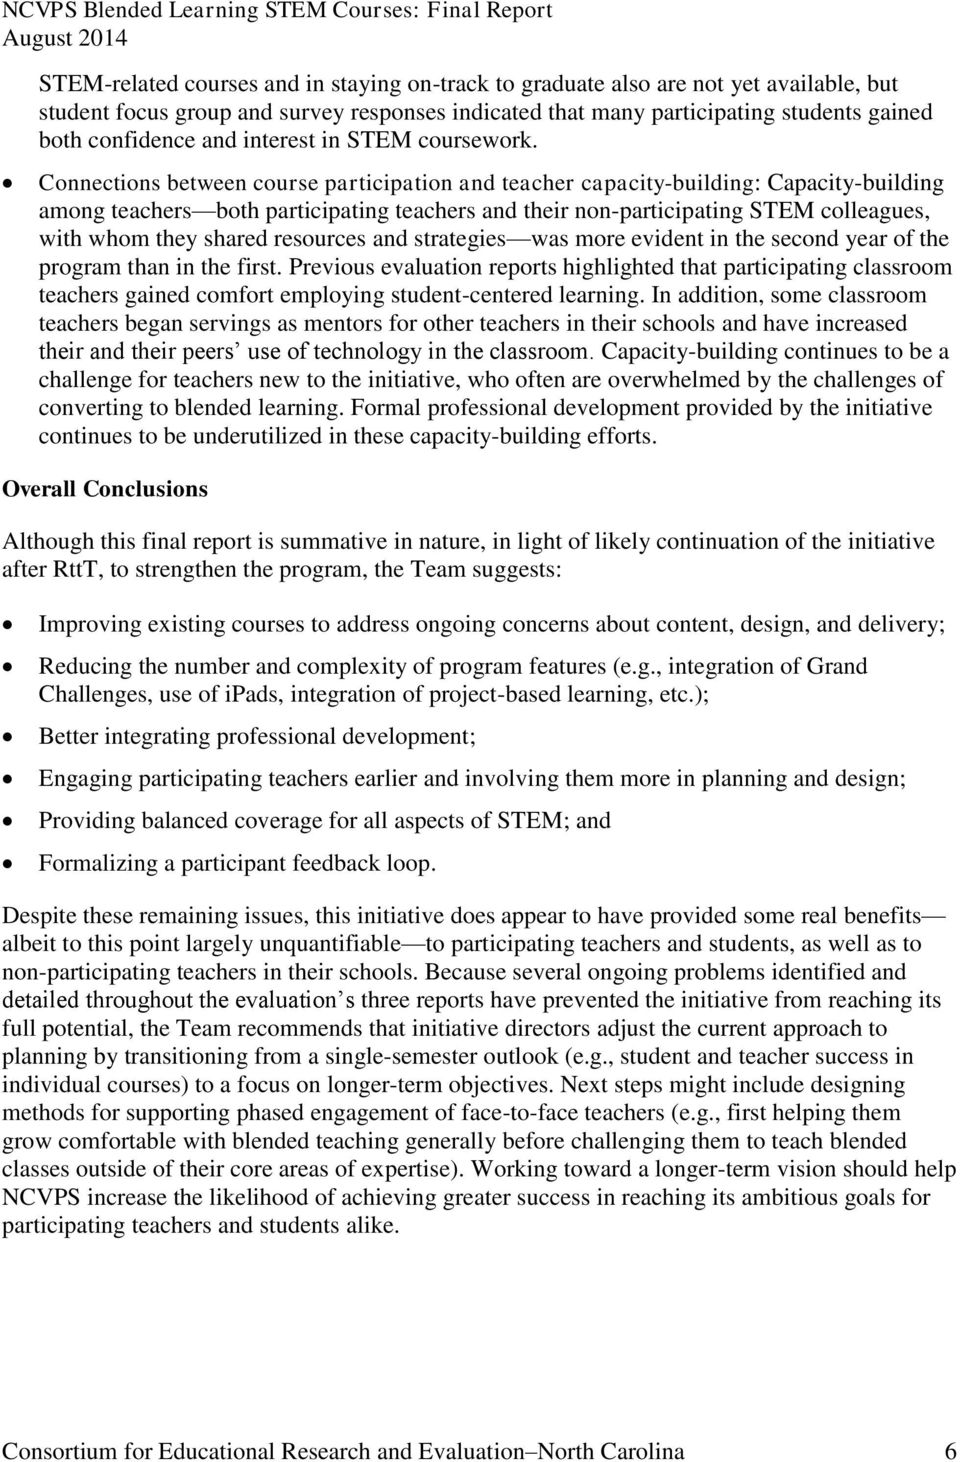 Connections between course participation and teacher capacity-building: Capacity-building among teachers both participating teachers and their non-participating STEM colleagues, with whom they shared